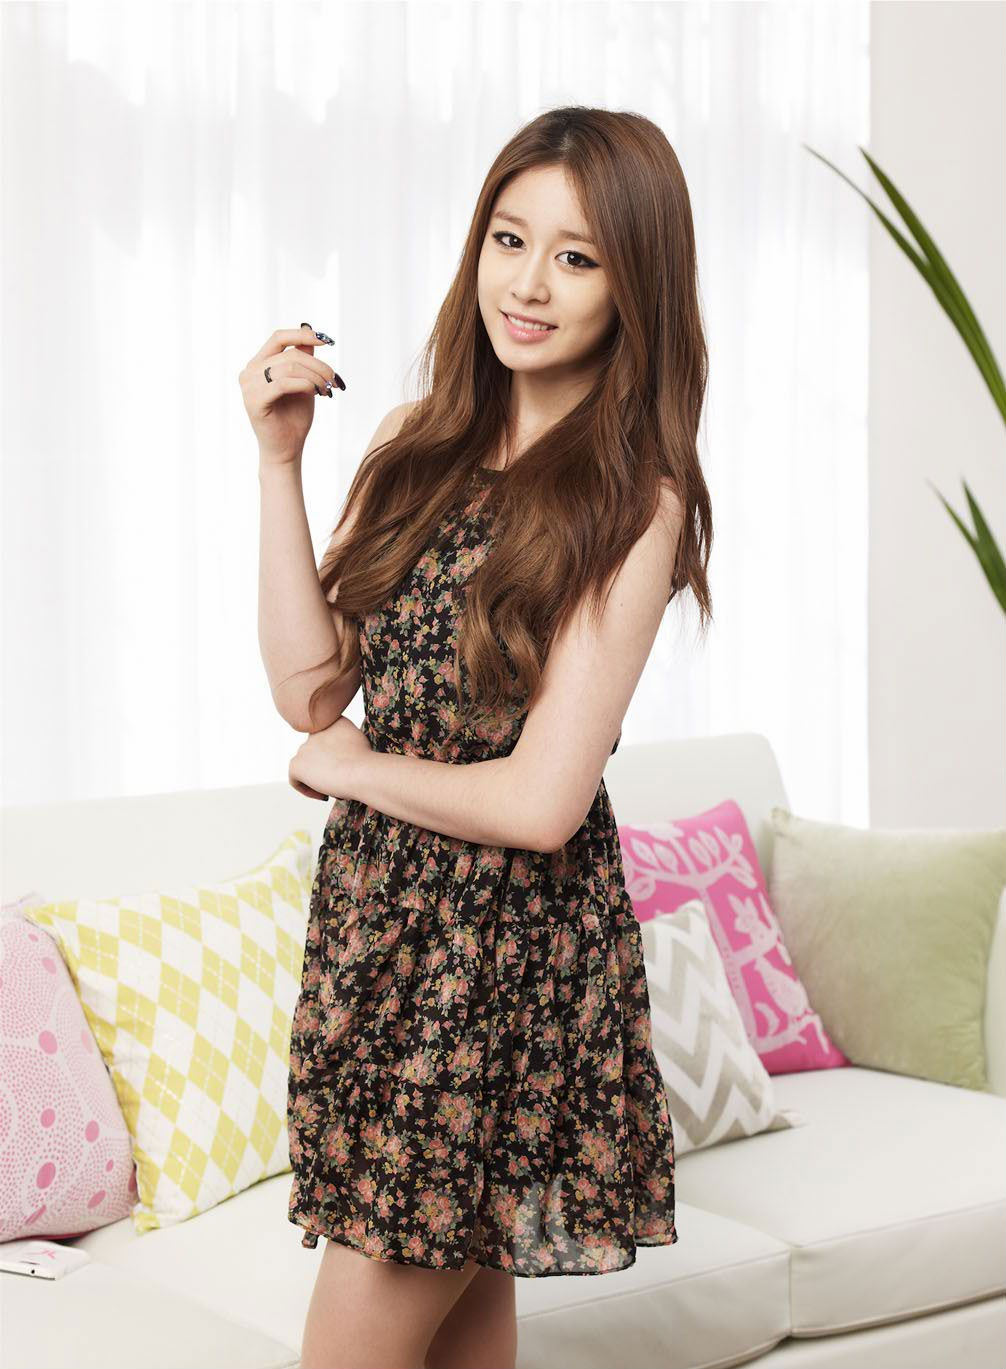 aku senonoh: Happy 19th Birthday, Jiyeon T-